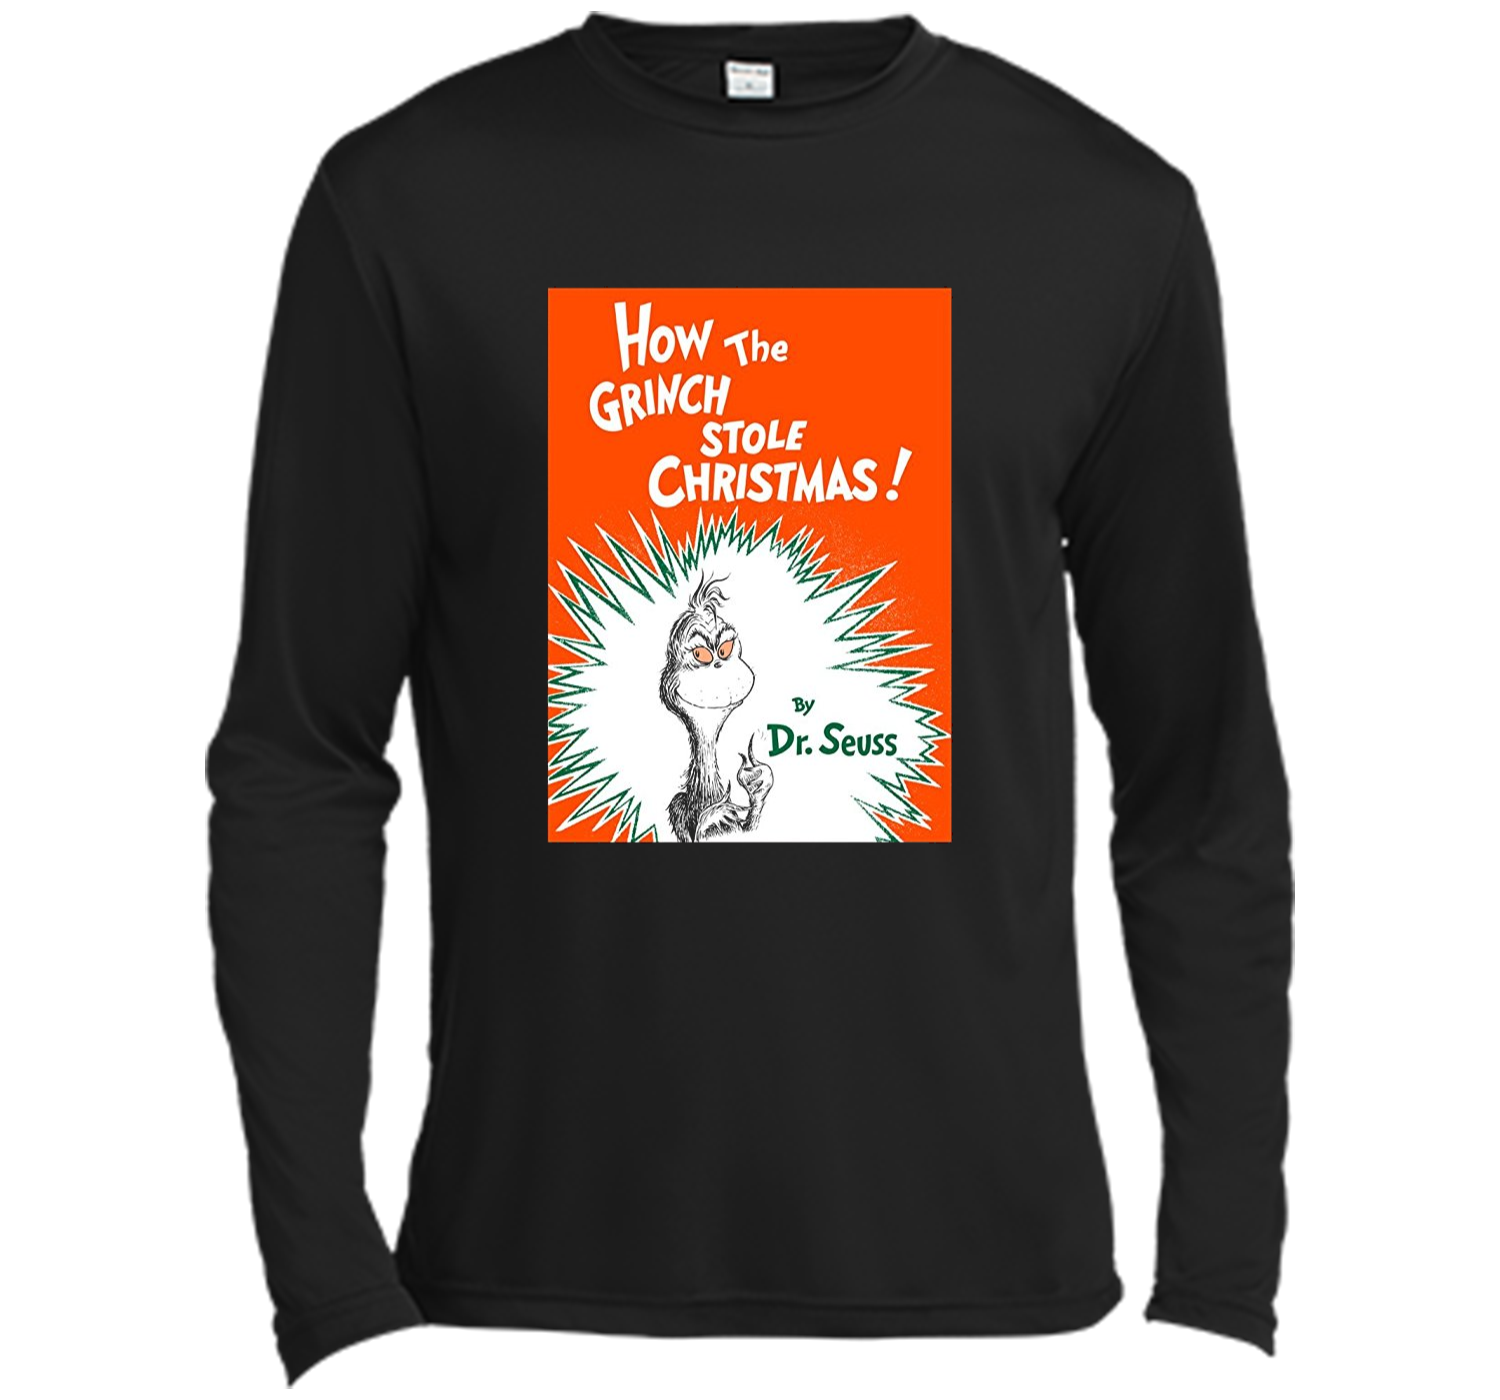 How The Grinch Stole Christmas Book Cover.Dr Seuss How The Grinch Stole Christmas Book Cover T Shirt